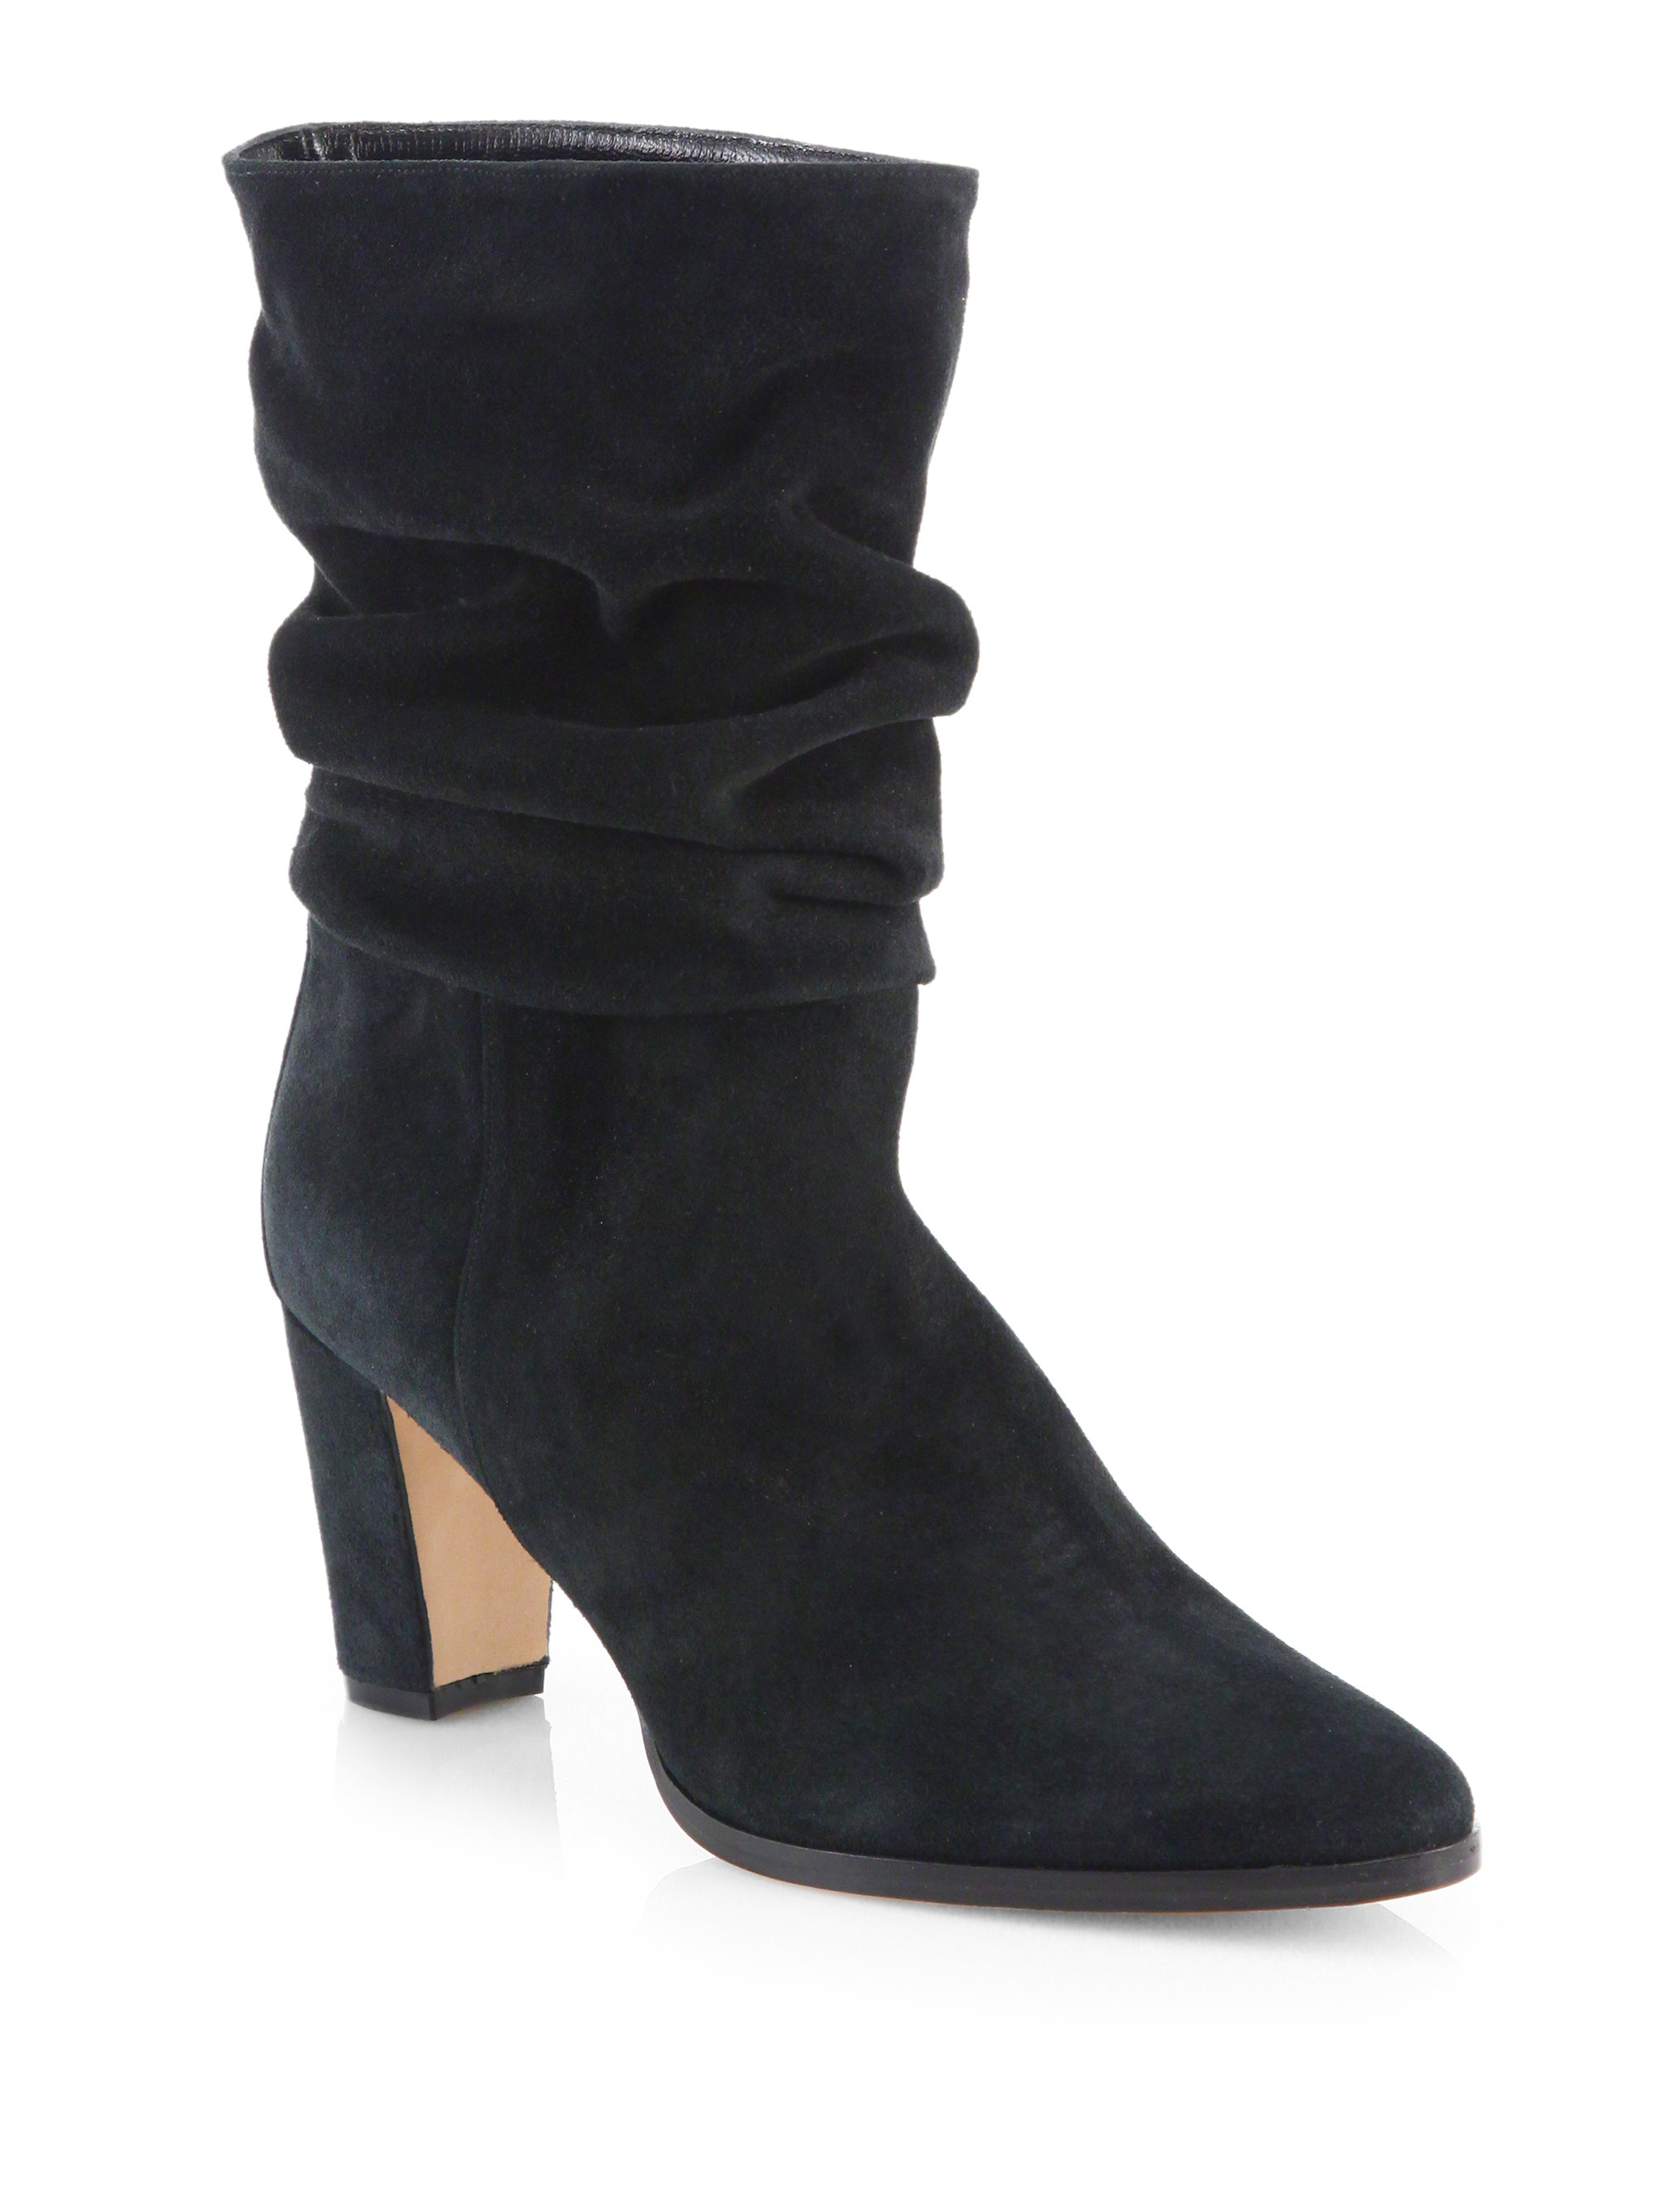 outlet genuine buy cheap wiki Manolo Blahnik Suede Mid-Calf Boots sale get authentic PqbuBFNuTd